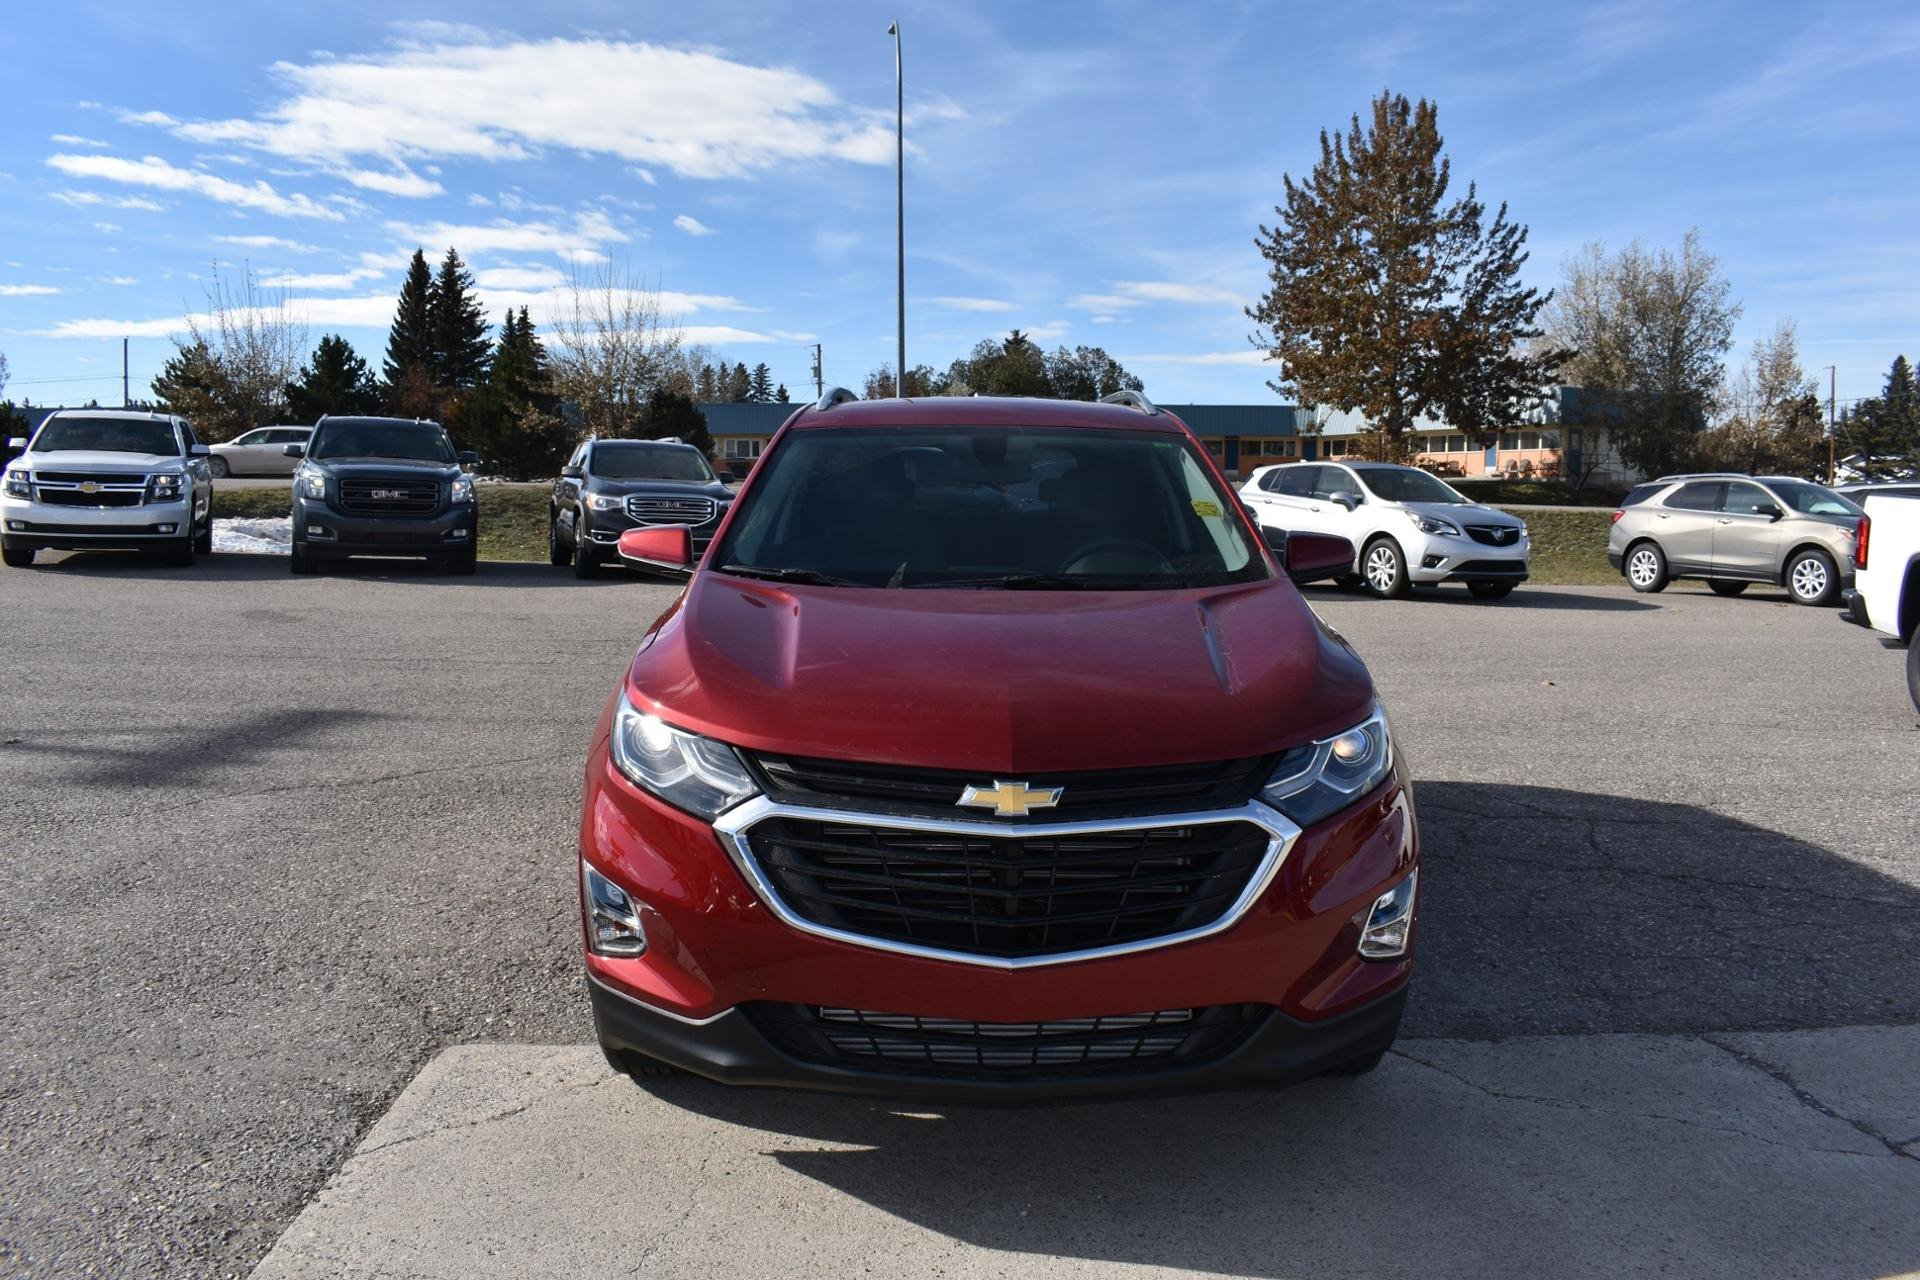 New 2019 Chevrolet-Equinox LT Equinox LT for sale $28,900 at M and V Leasing in Brooklyn NY 11223 1